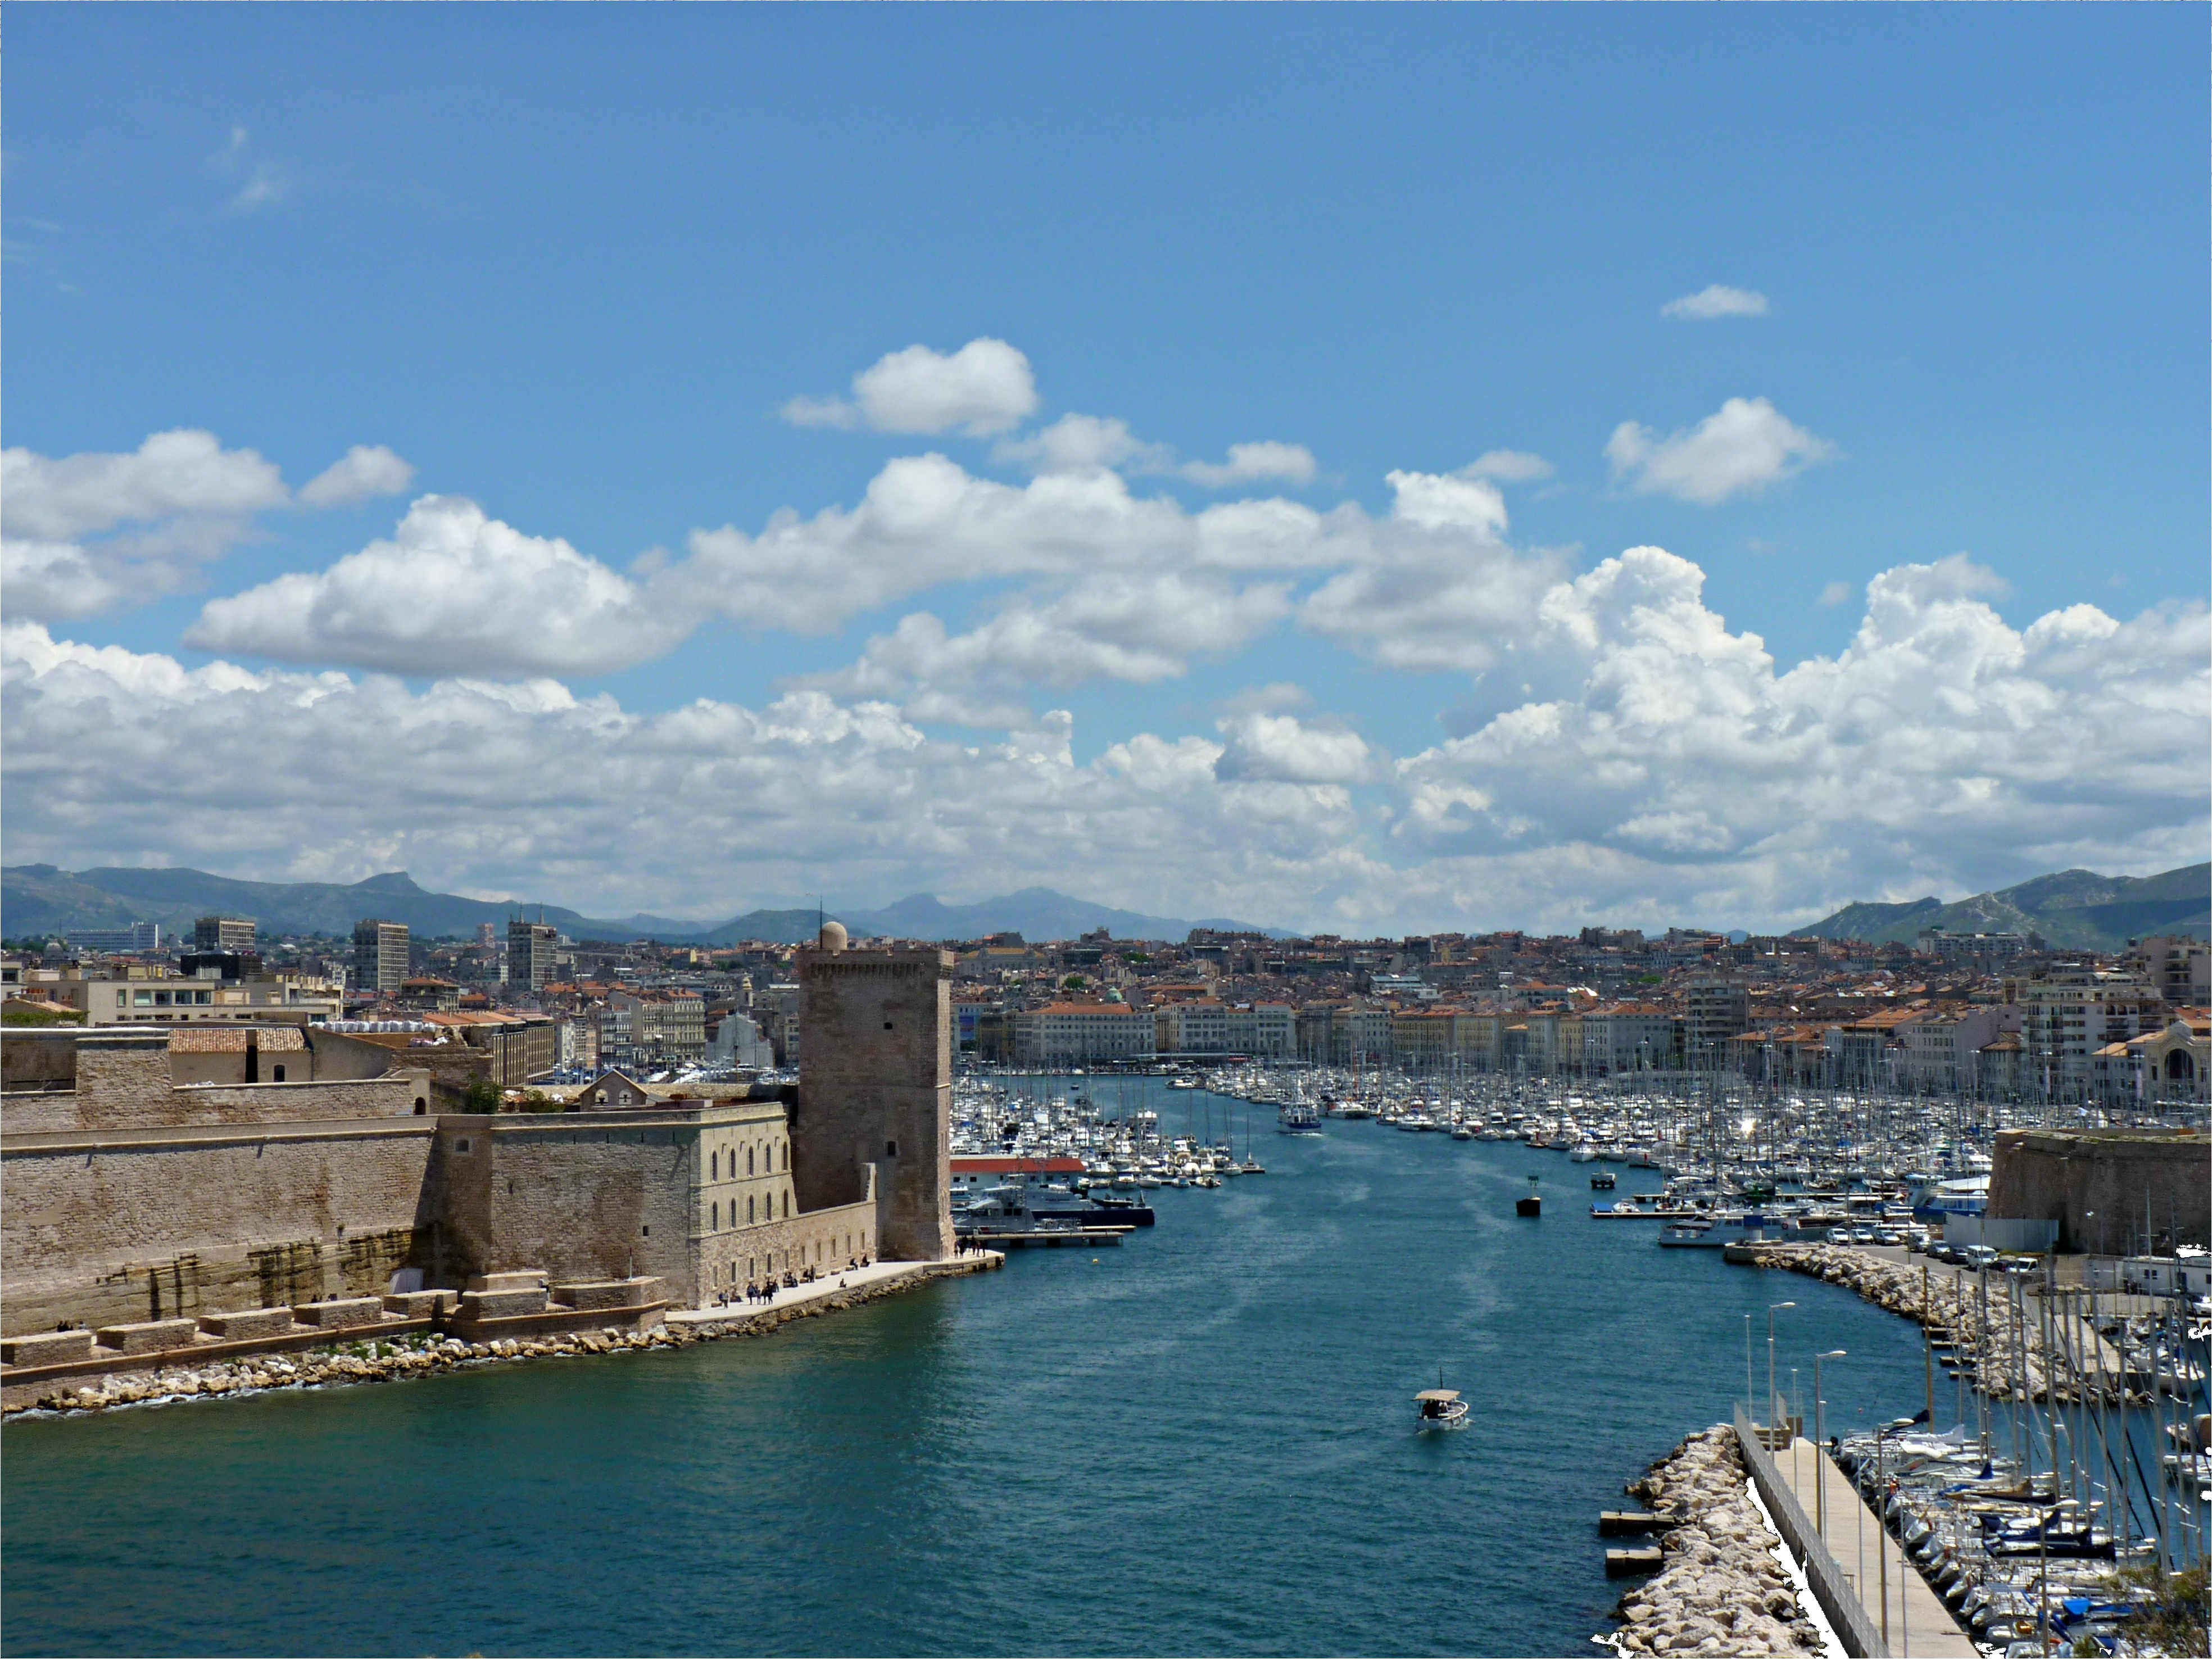 marseille_background_2.jpg